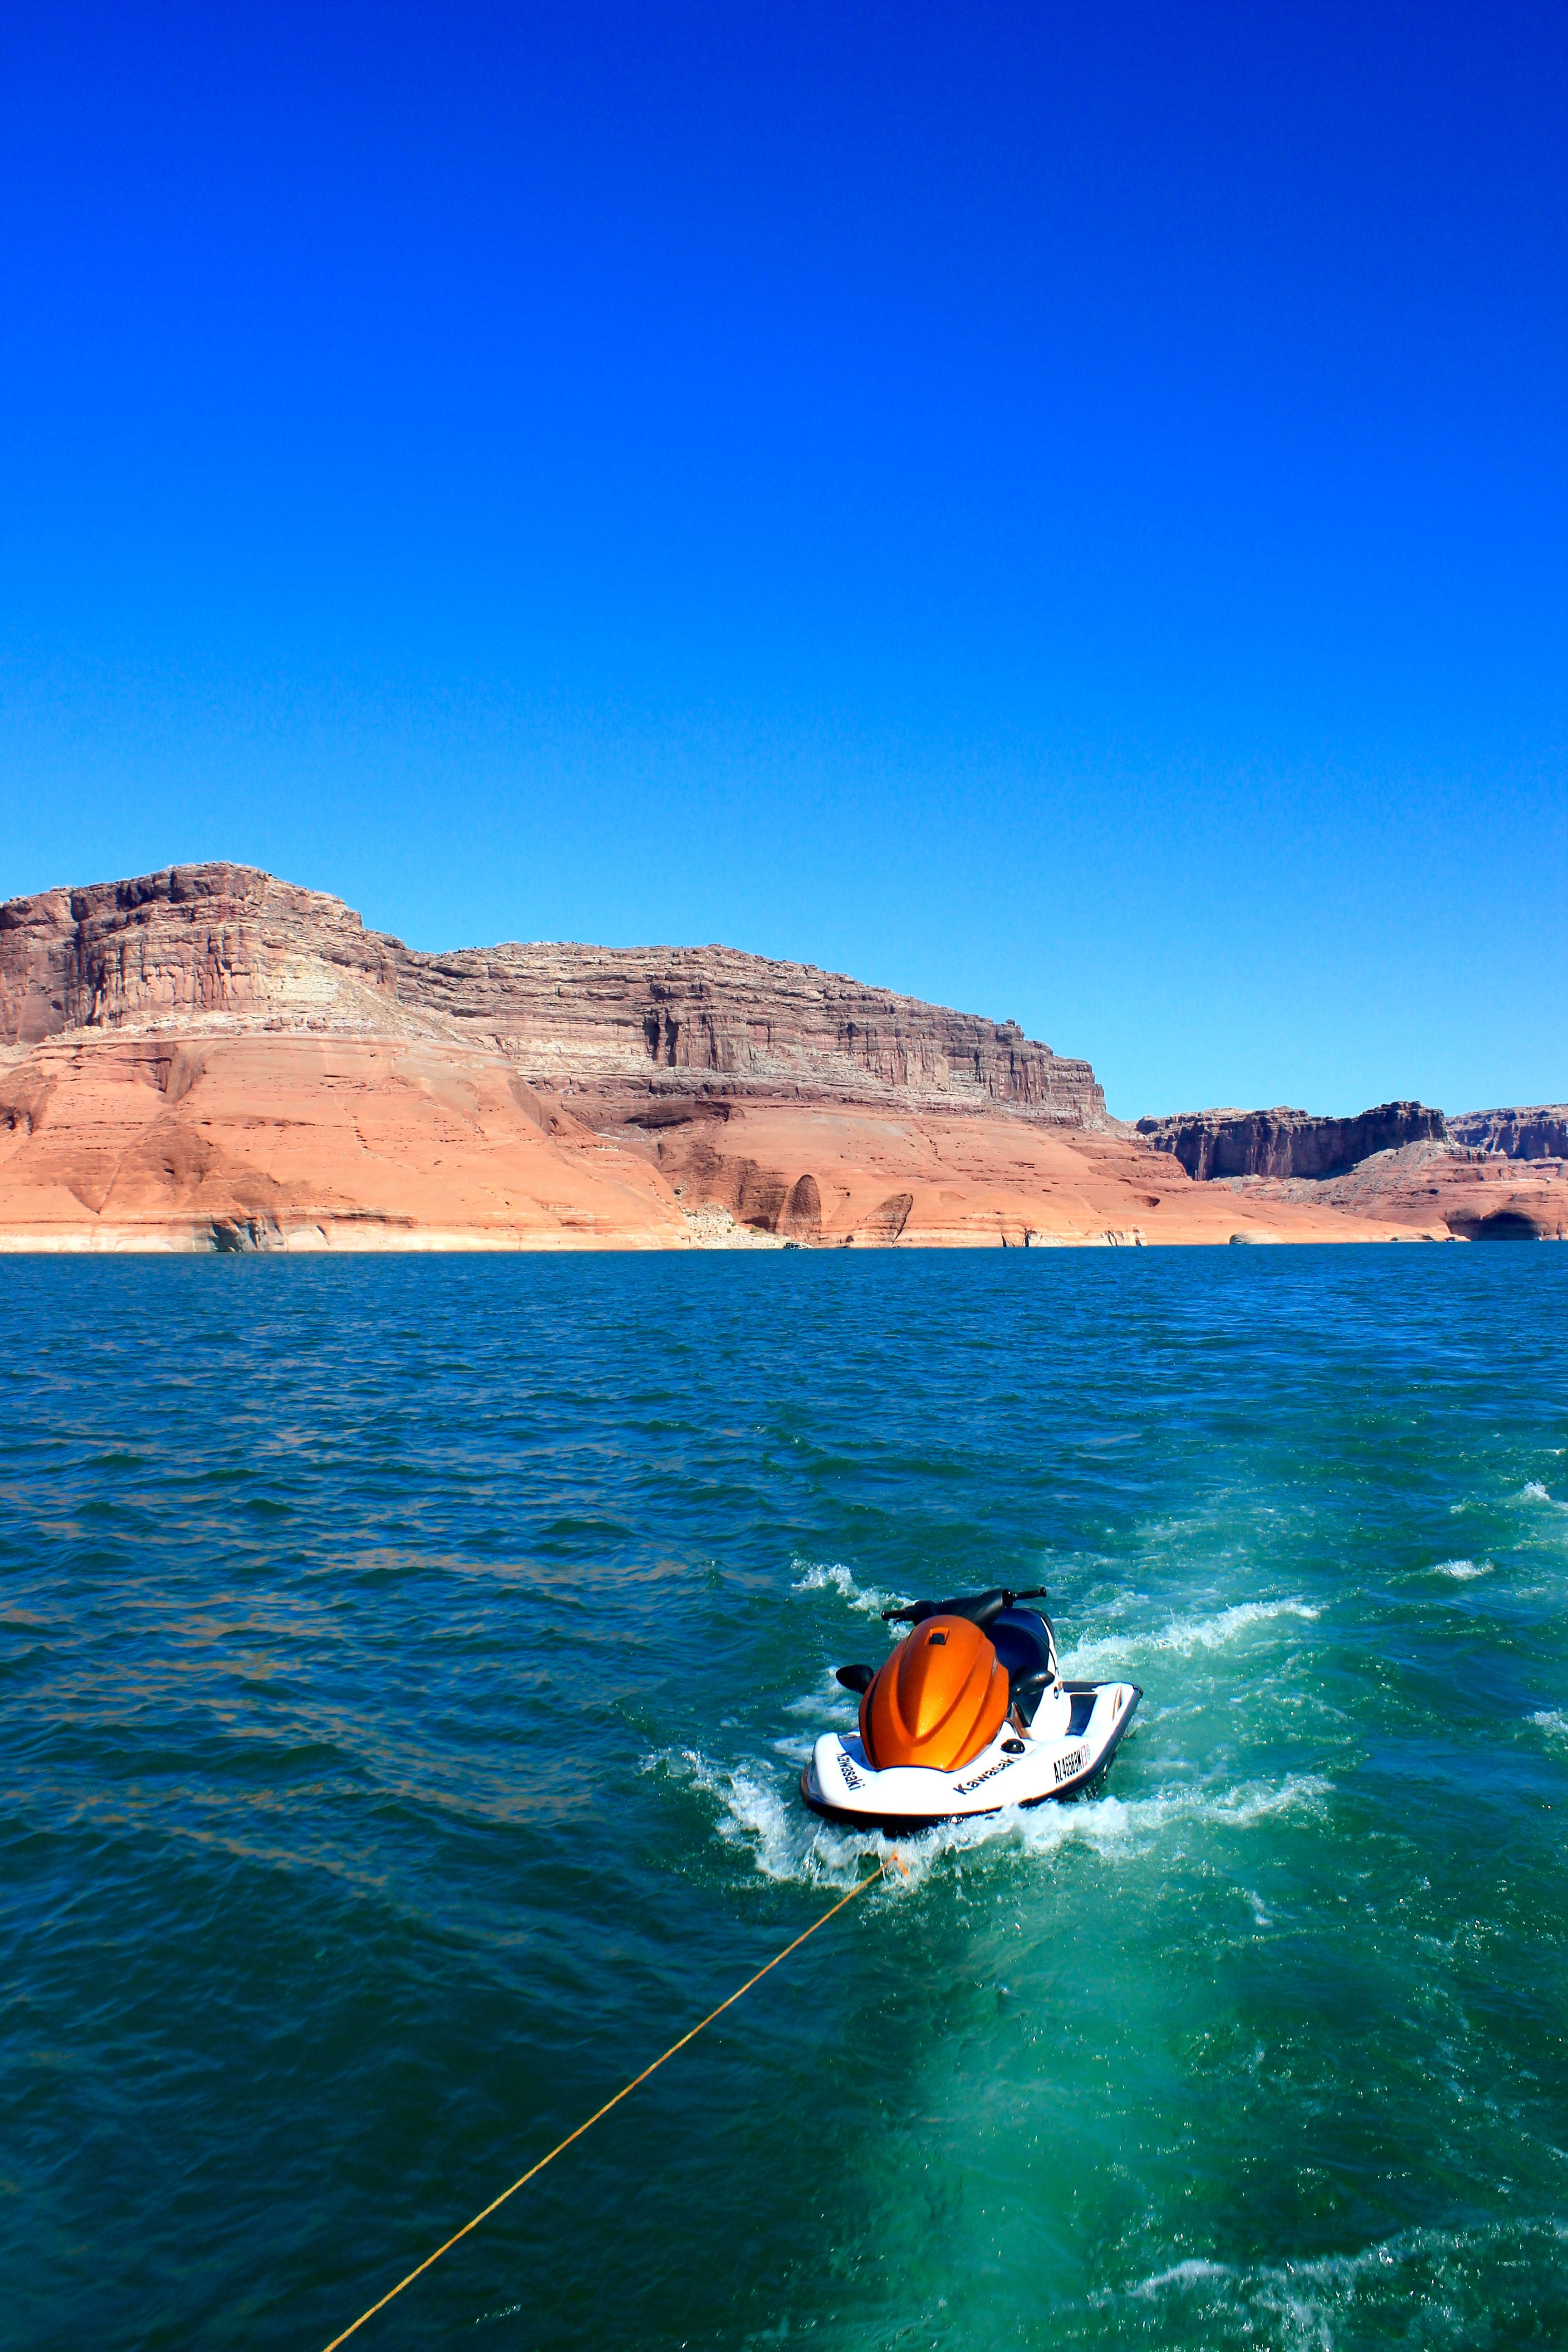 Our jet ski at lake powell in 2013 this is a 2006 model